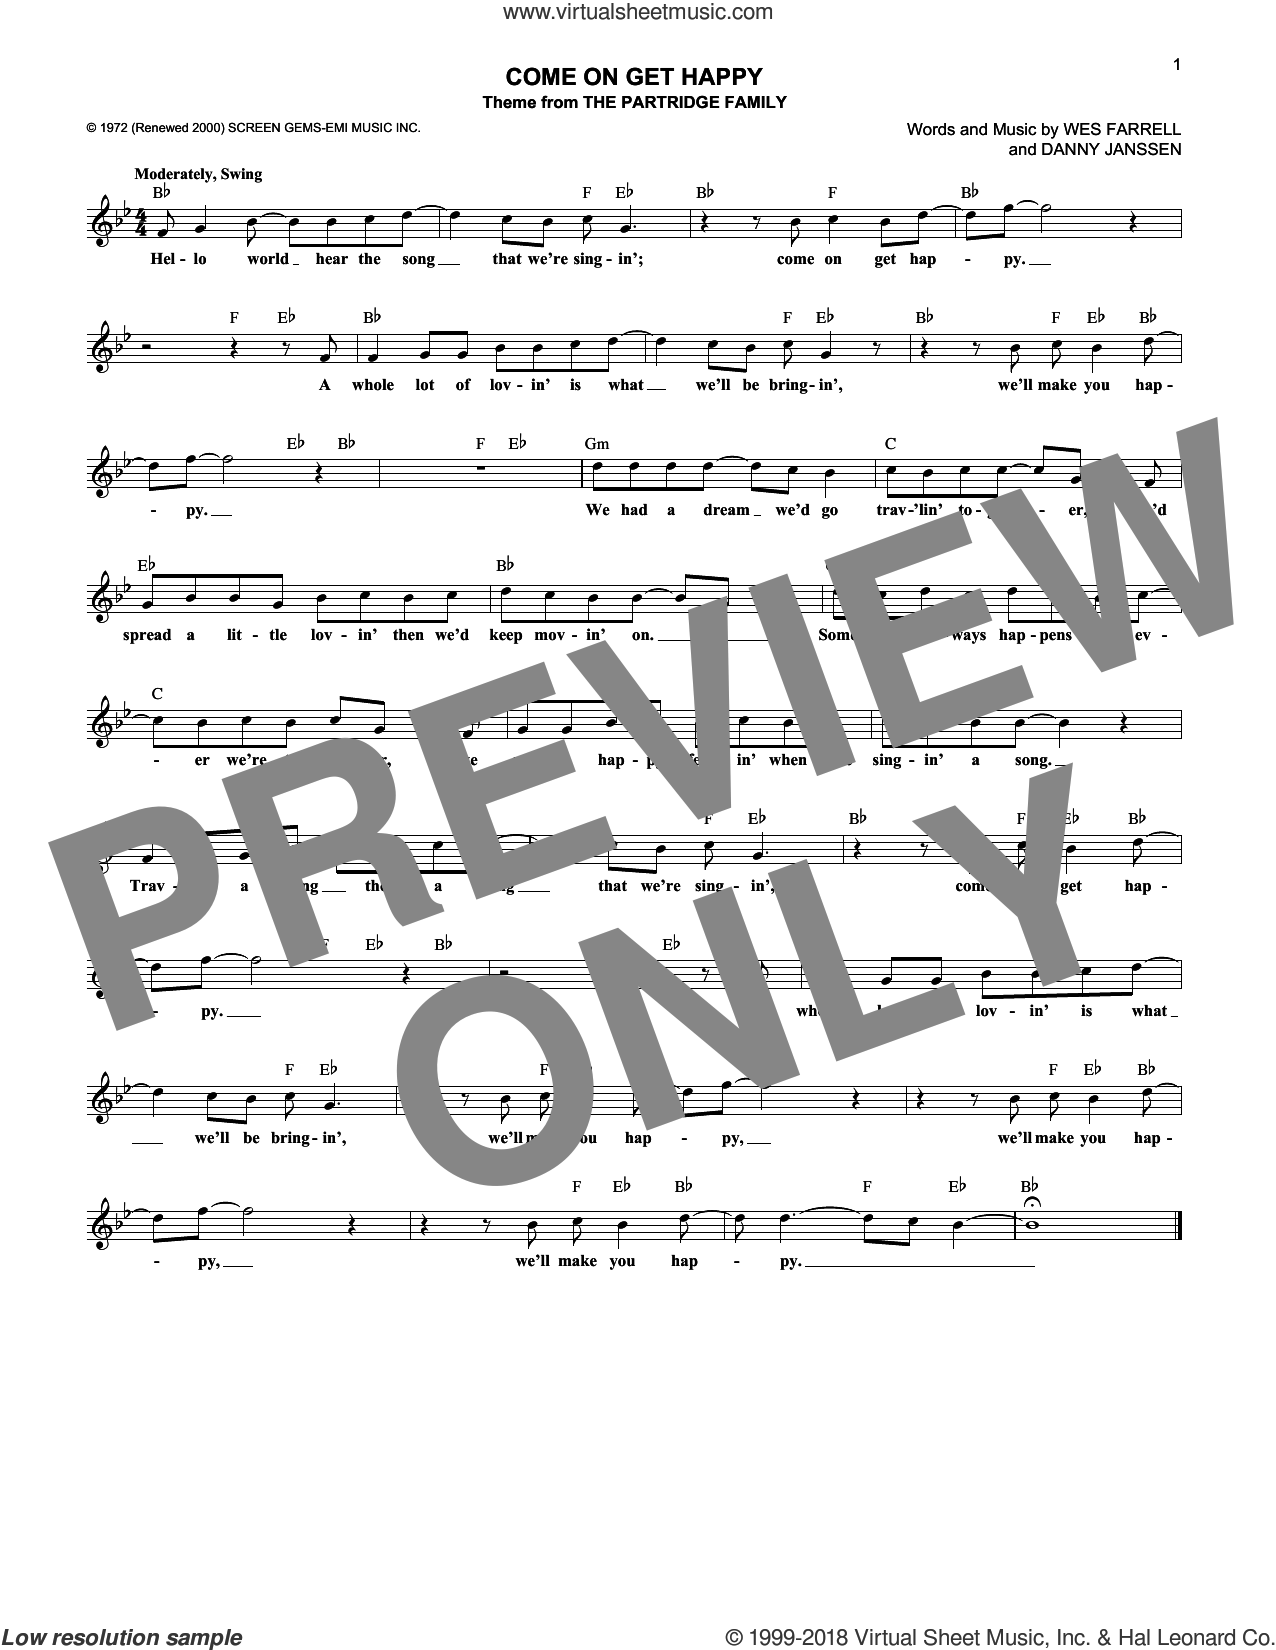 Come On Get Happy sheet music for voice and other instruments (fake book) by The Partridge Family. Score Image Preview.